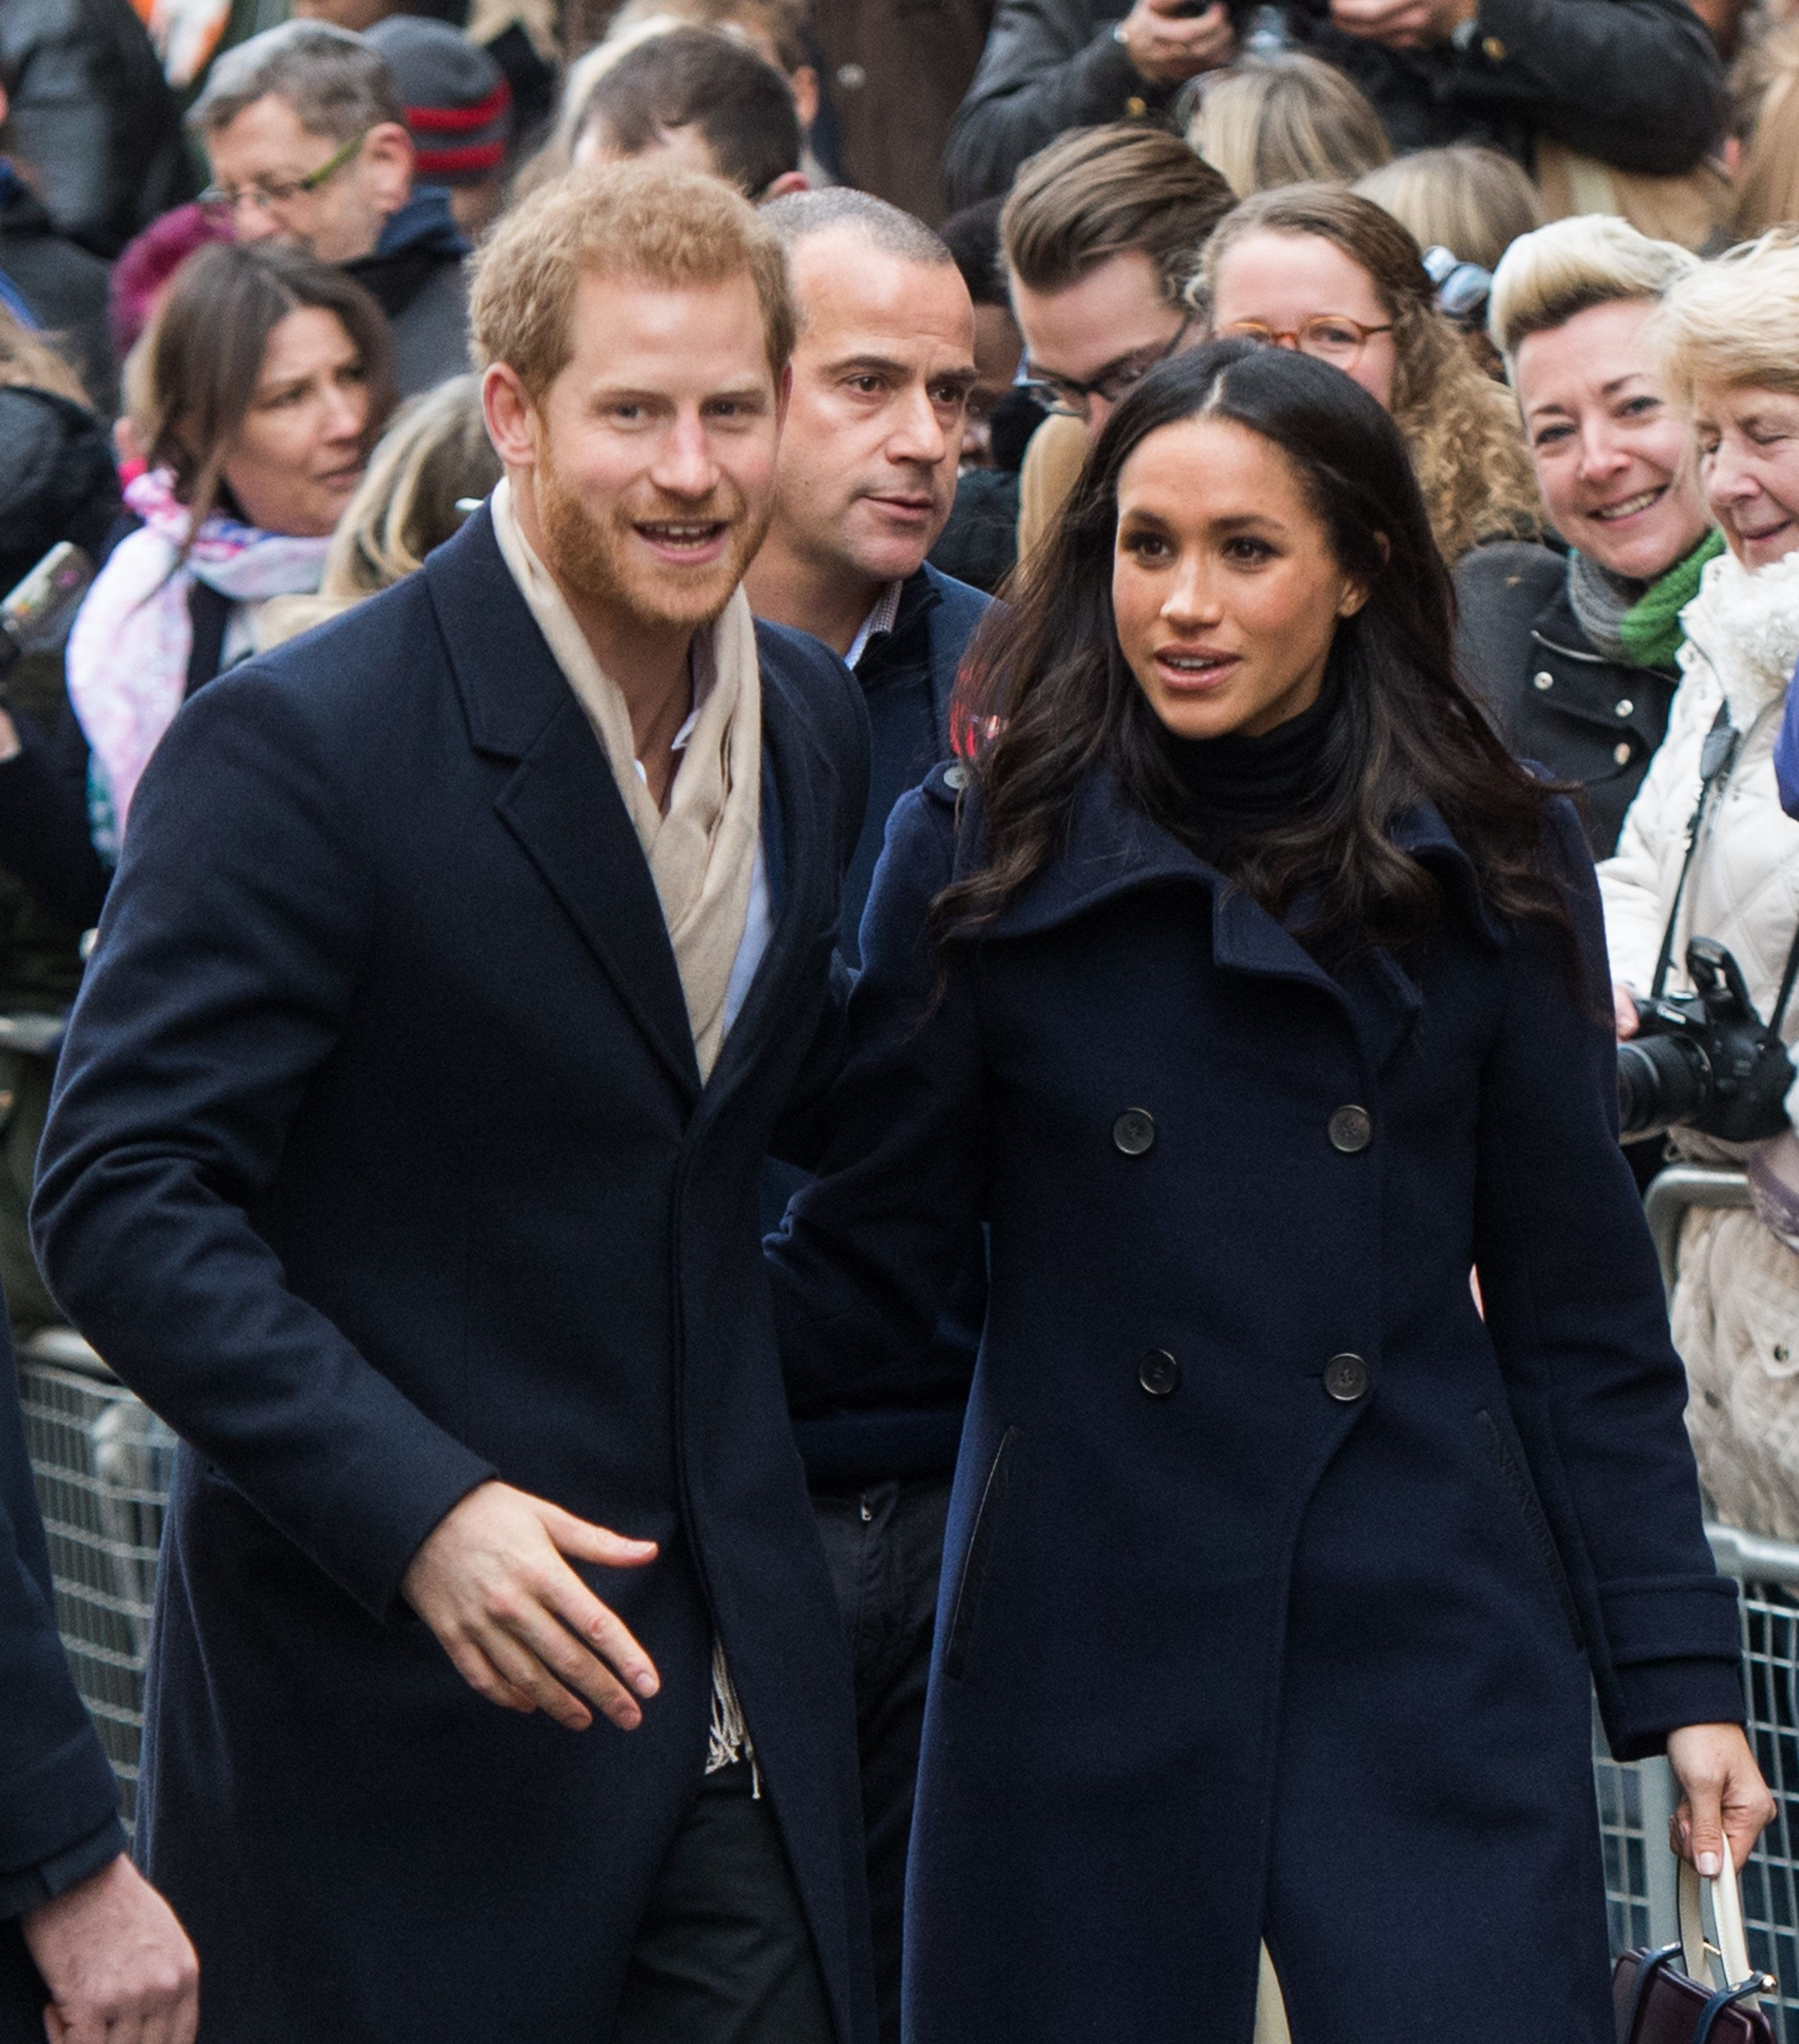 Prince Harry and Meghan Markle are set to tie the knot in Windsor on